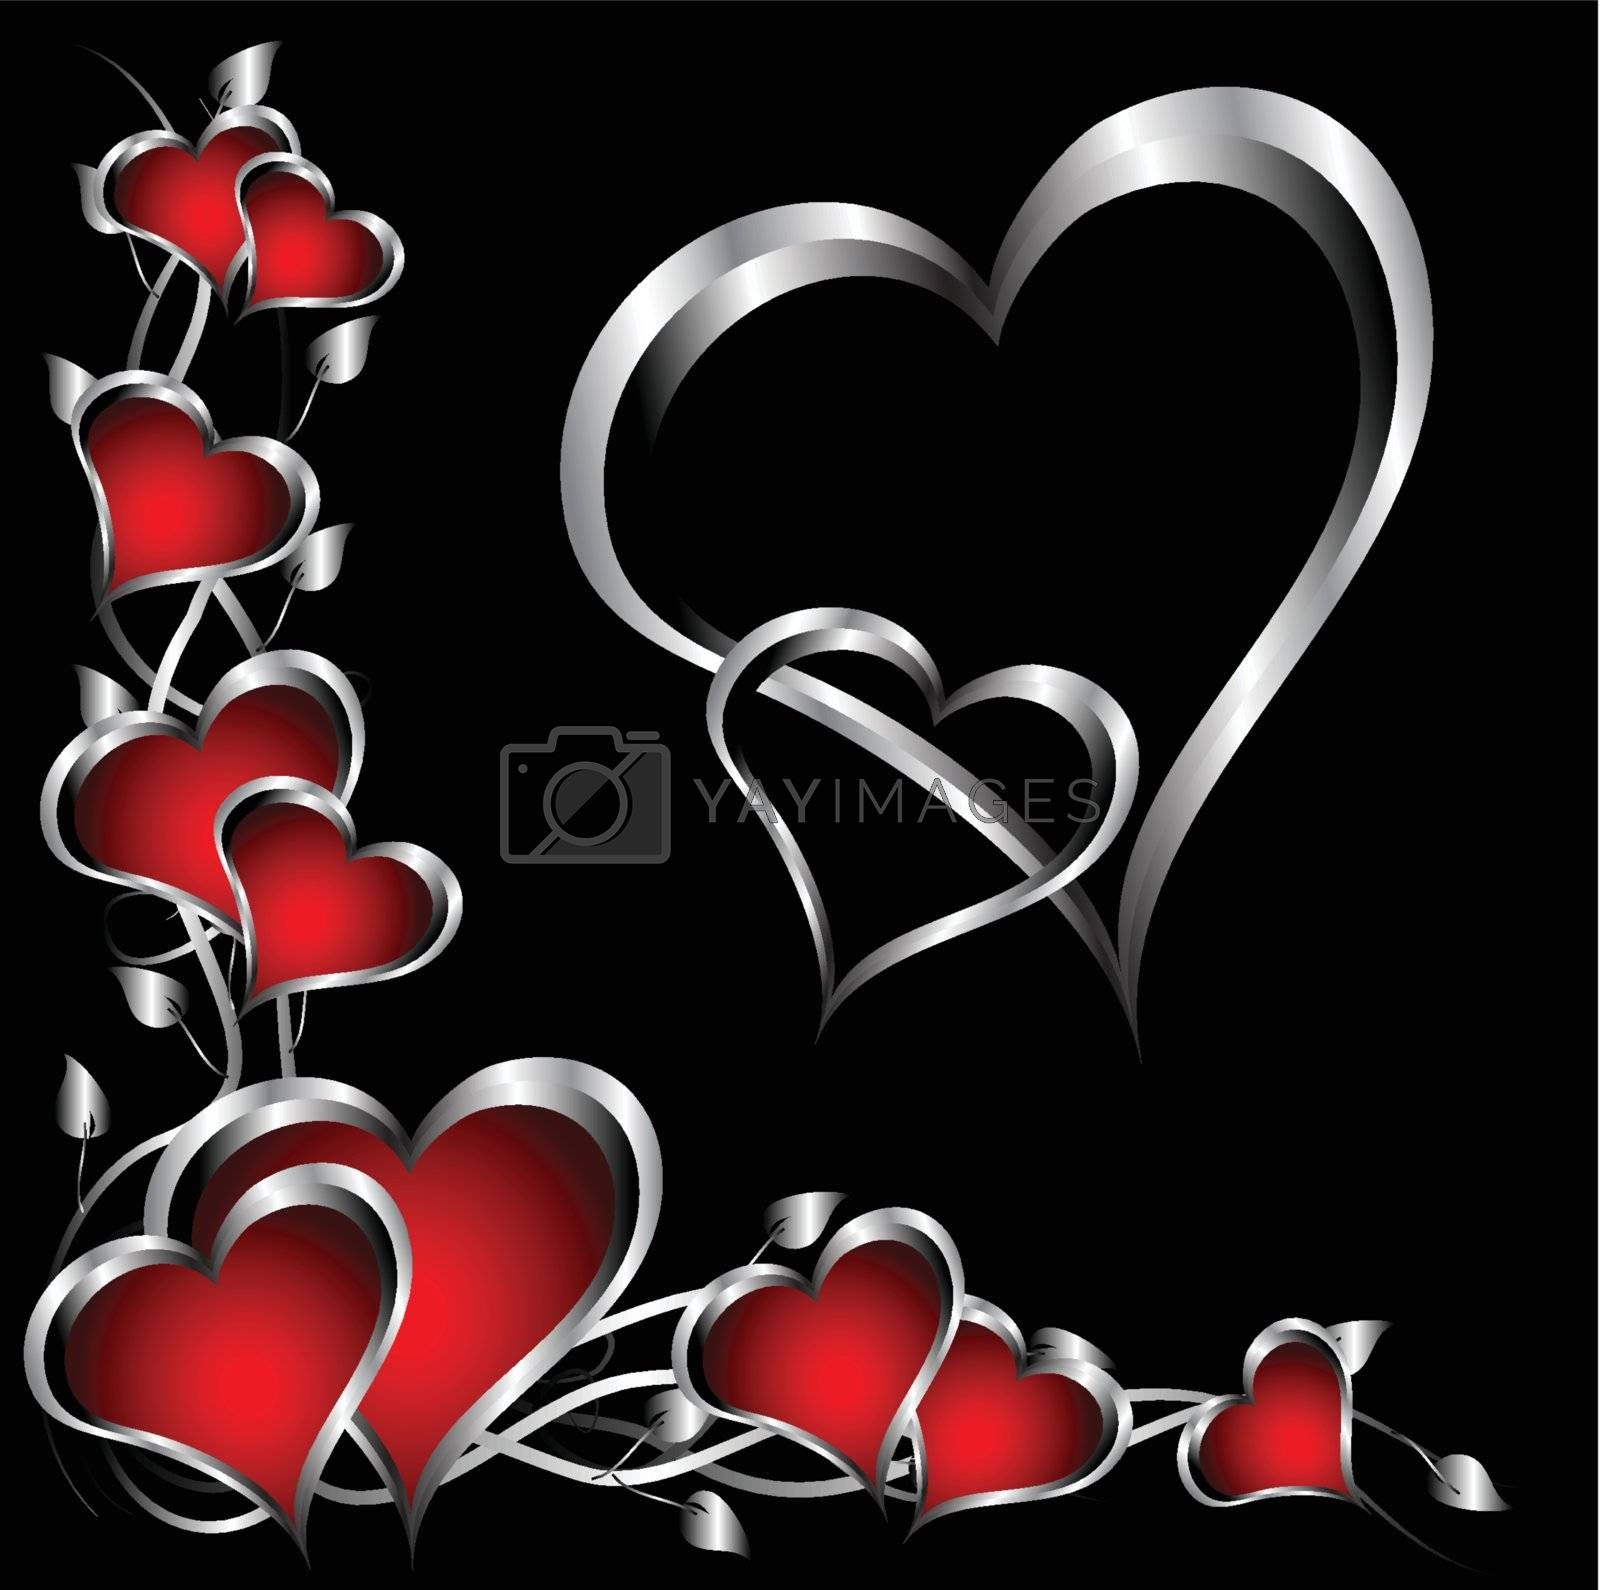 Royalty free image of A red and silver hearts Valentines Day Background by mhprice